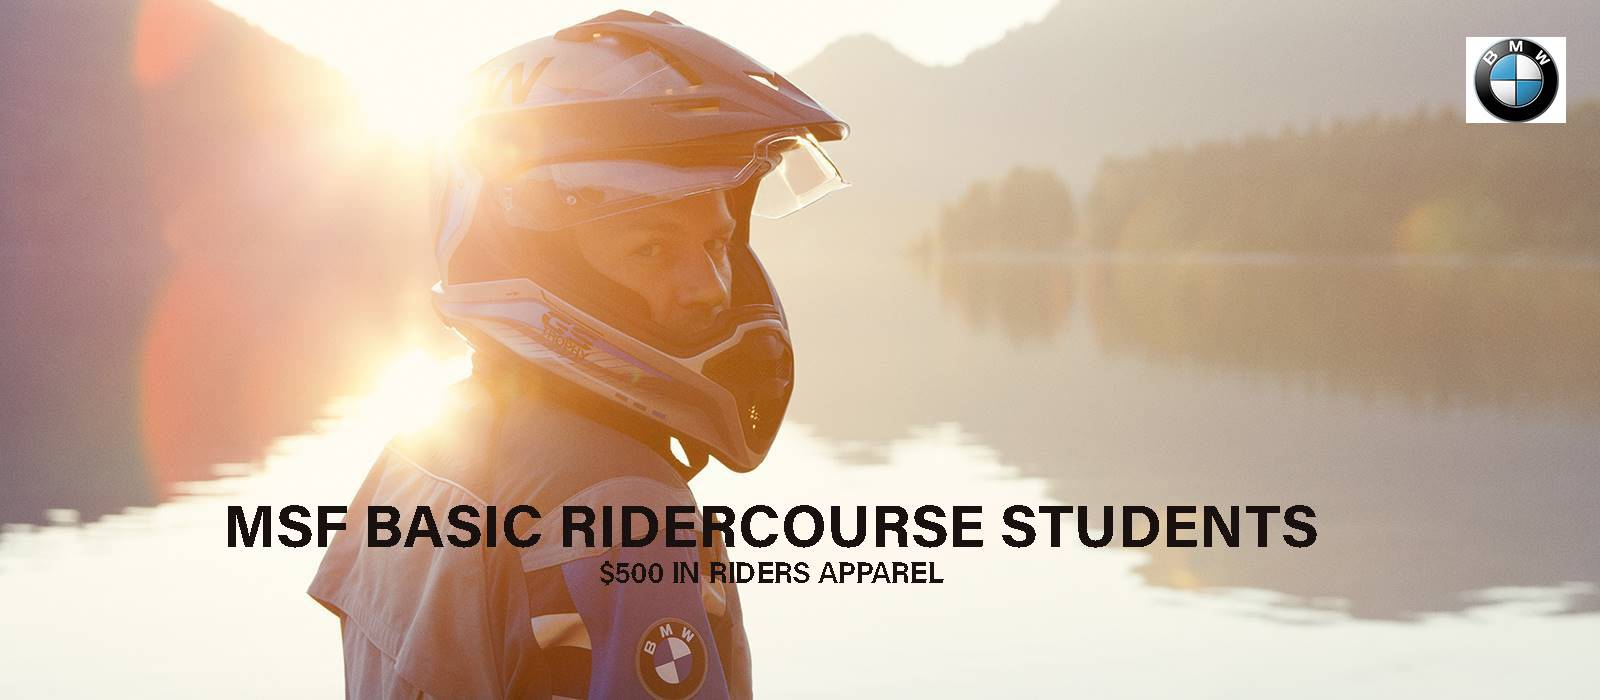 BMW - MSF BASIC RIDERCOURSE STUDENTS